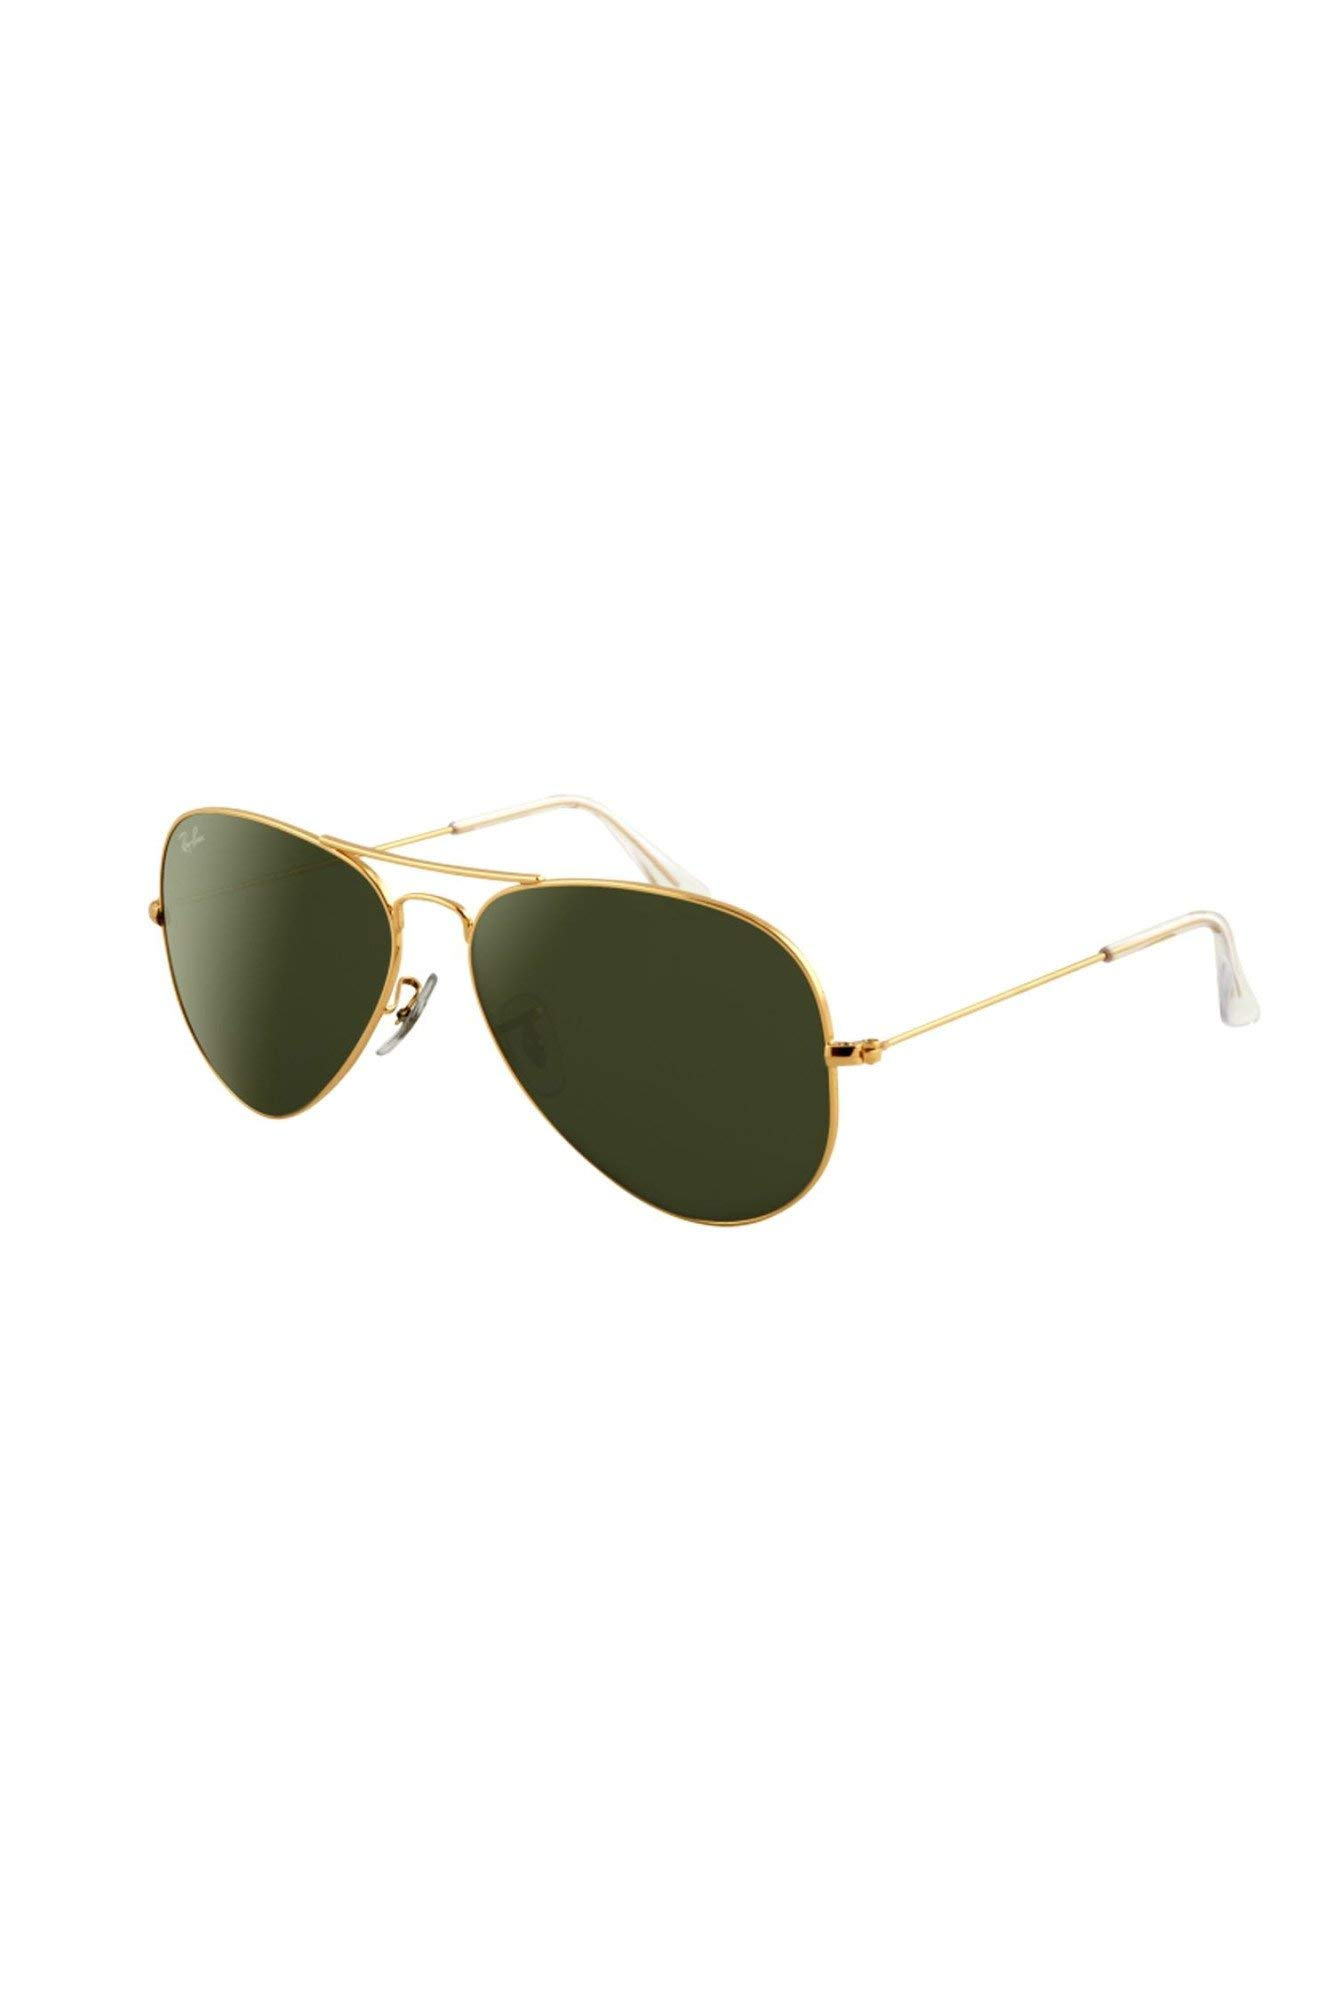 Ray-Ban Aviator Classic,  Green Classic, 58 mm by RAY-BAN